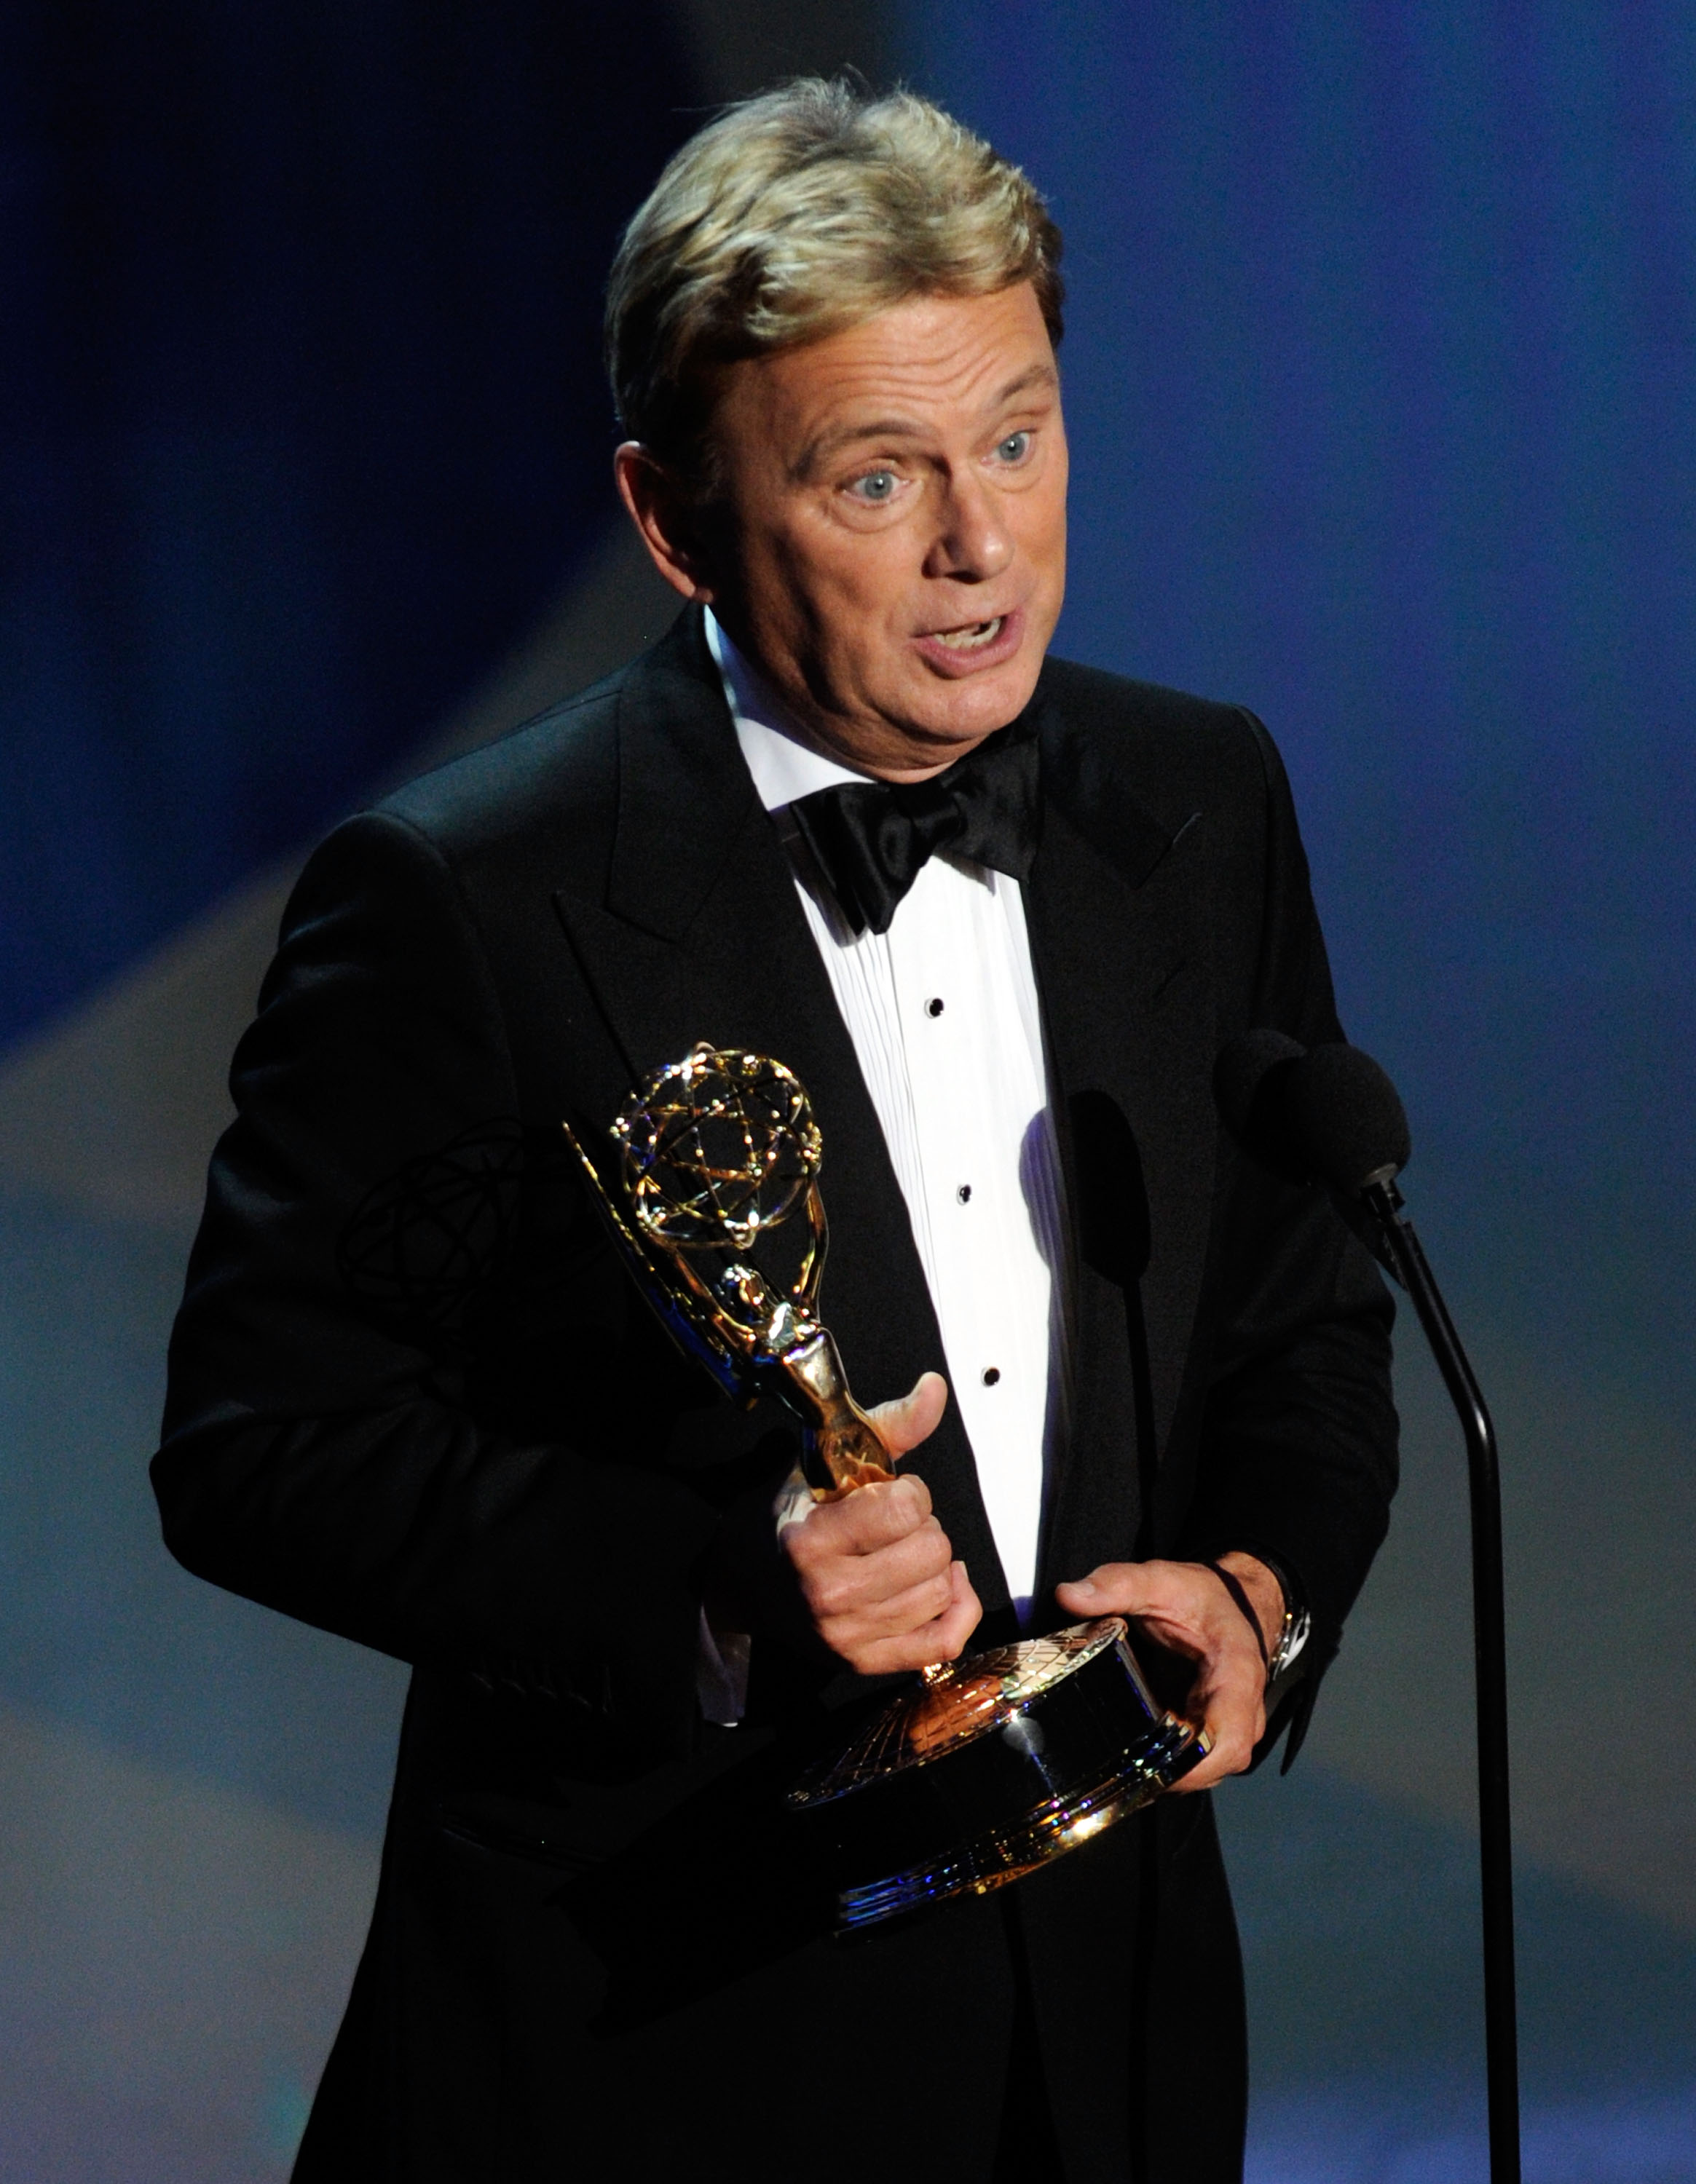 LAS VEGAS, NV - JUNE 19: Pat Sajak accepts the Lifetime Achievement Award onstage during the 38th Annual Daytime Entertainment Emmy Awards held at the Las Vegas Hilton on June 19, 2011 in Las Vegas, Nevada. (Photo by Ethan Miller/Getty Images)